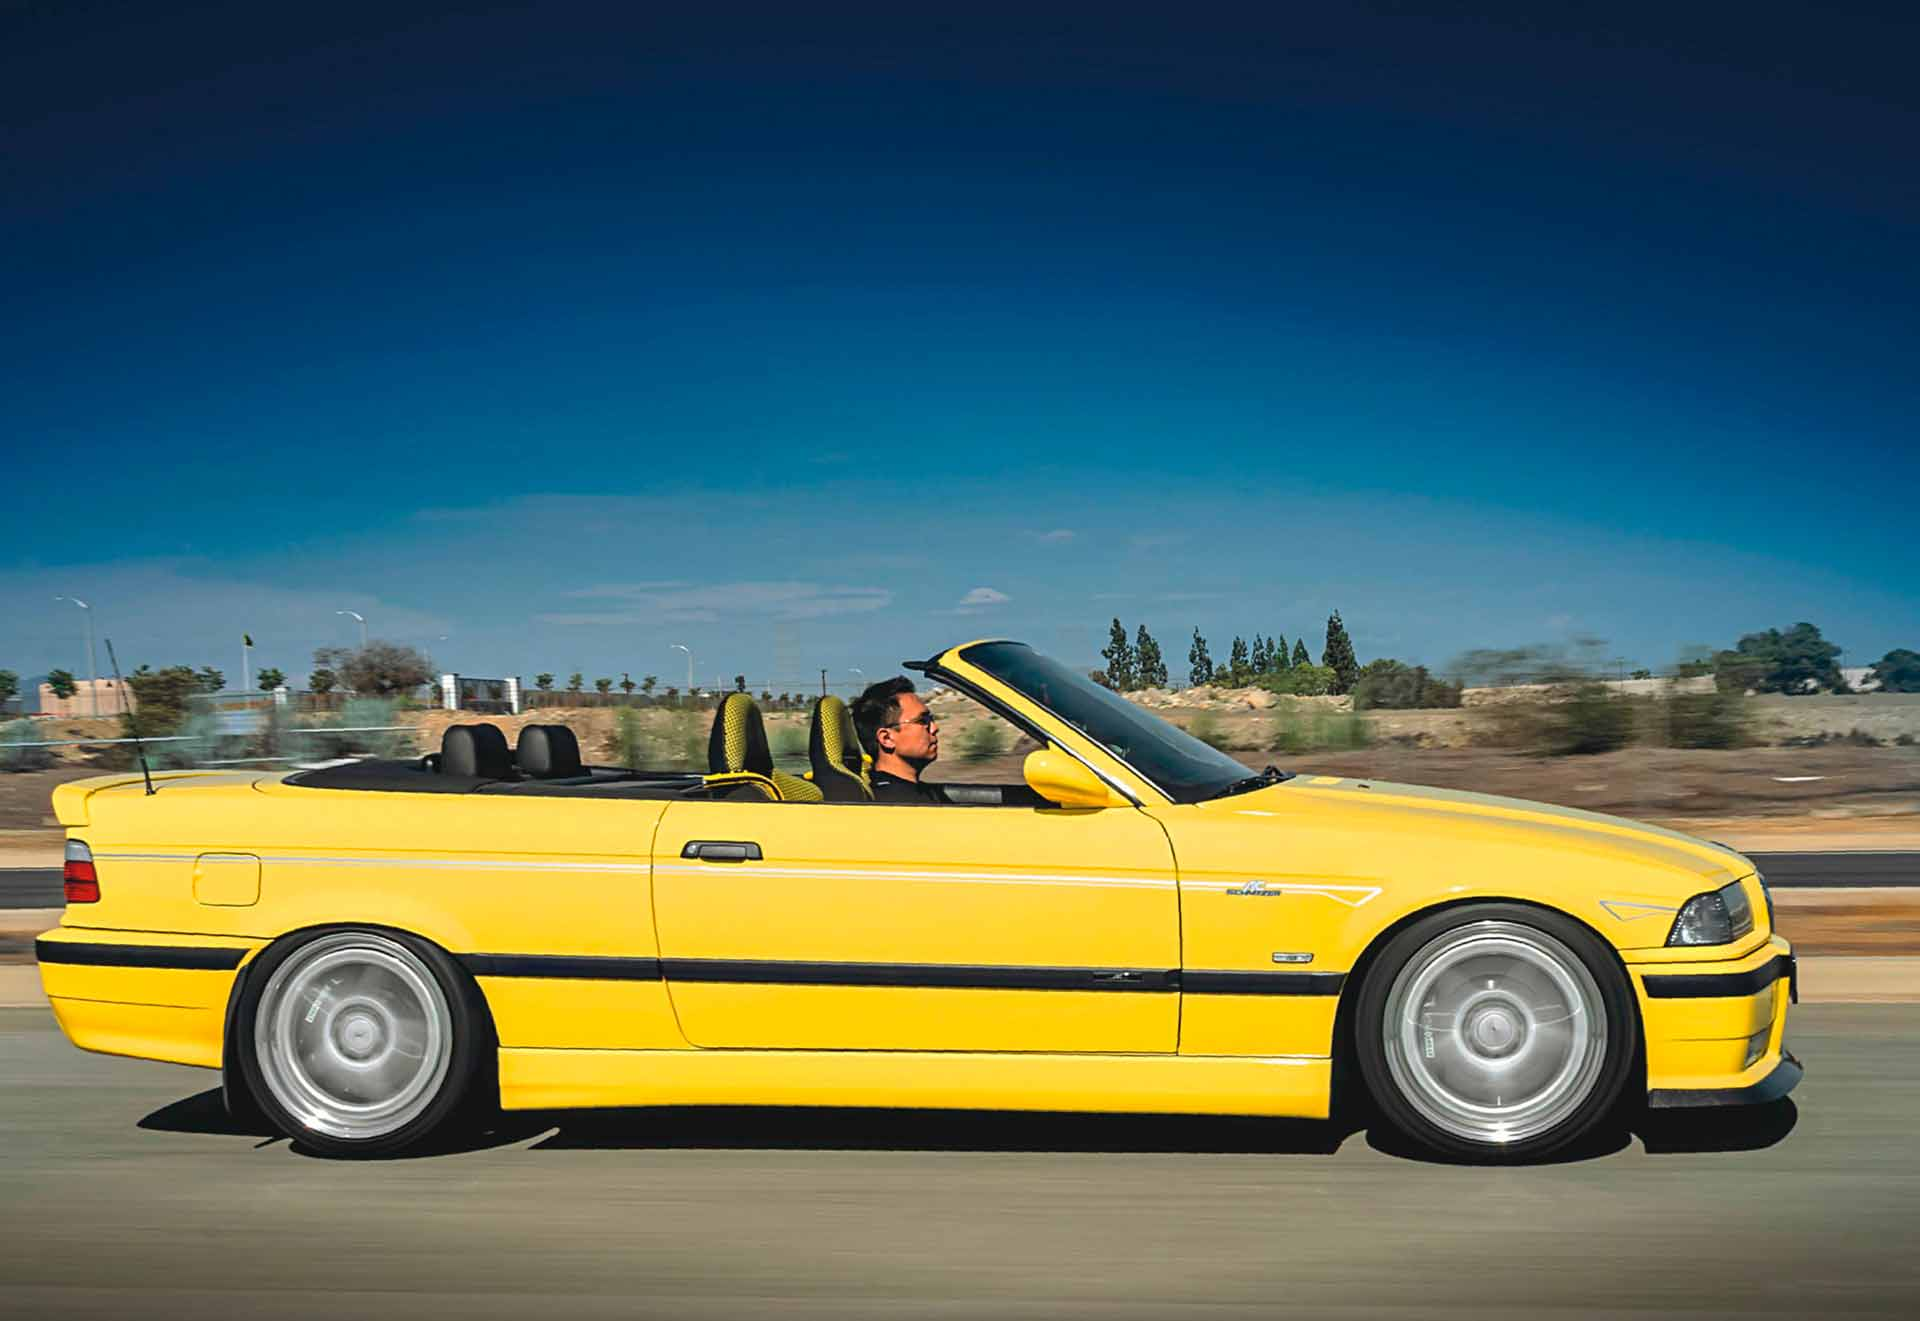 Supercharged 362whp Bmw M3 Convertible E36 2cs Ac Schnitzer Look Drive My Blogs Drive